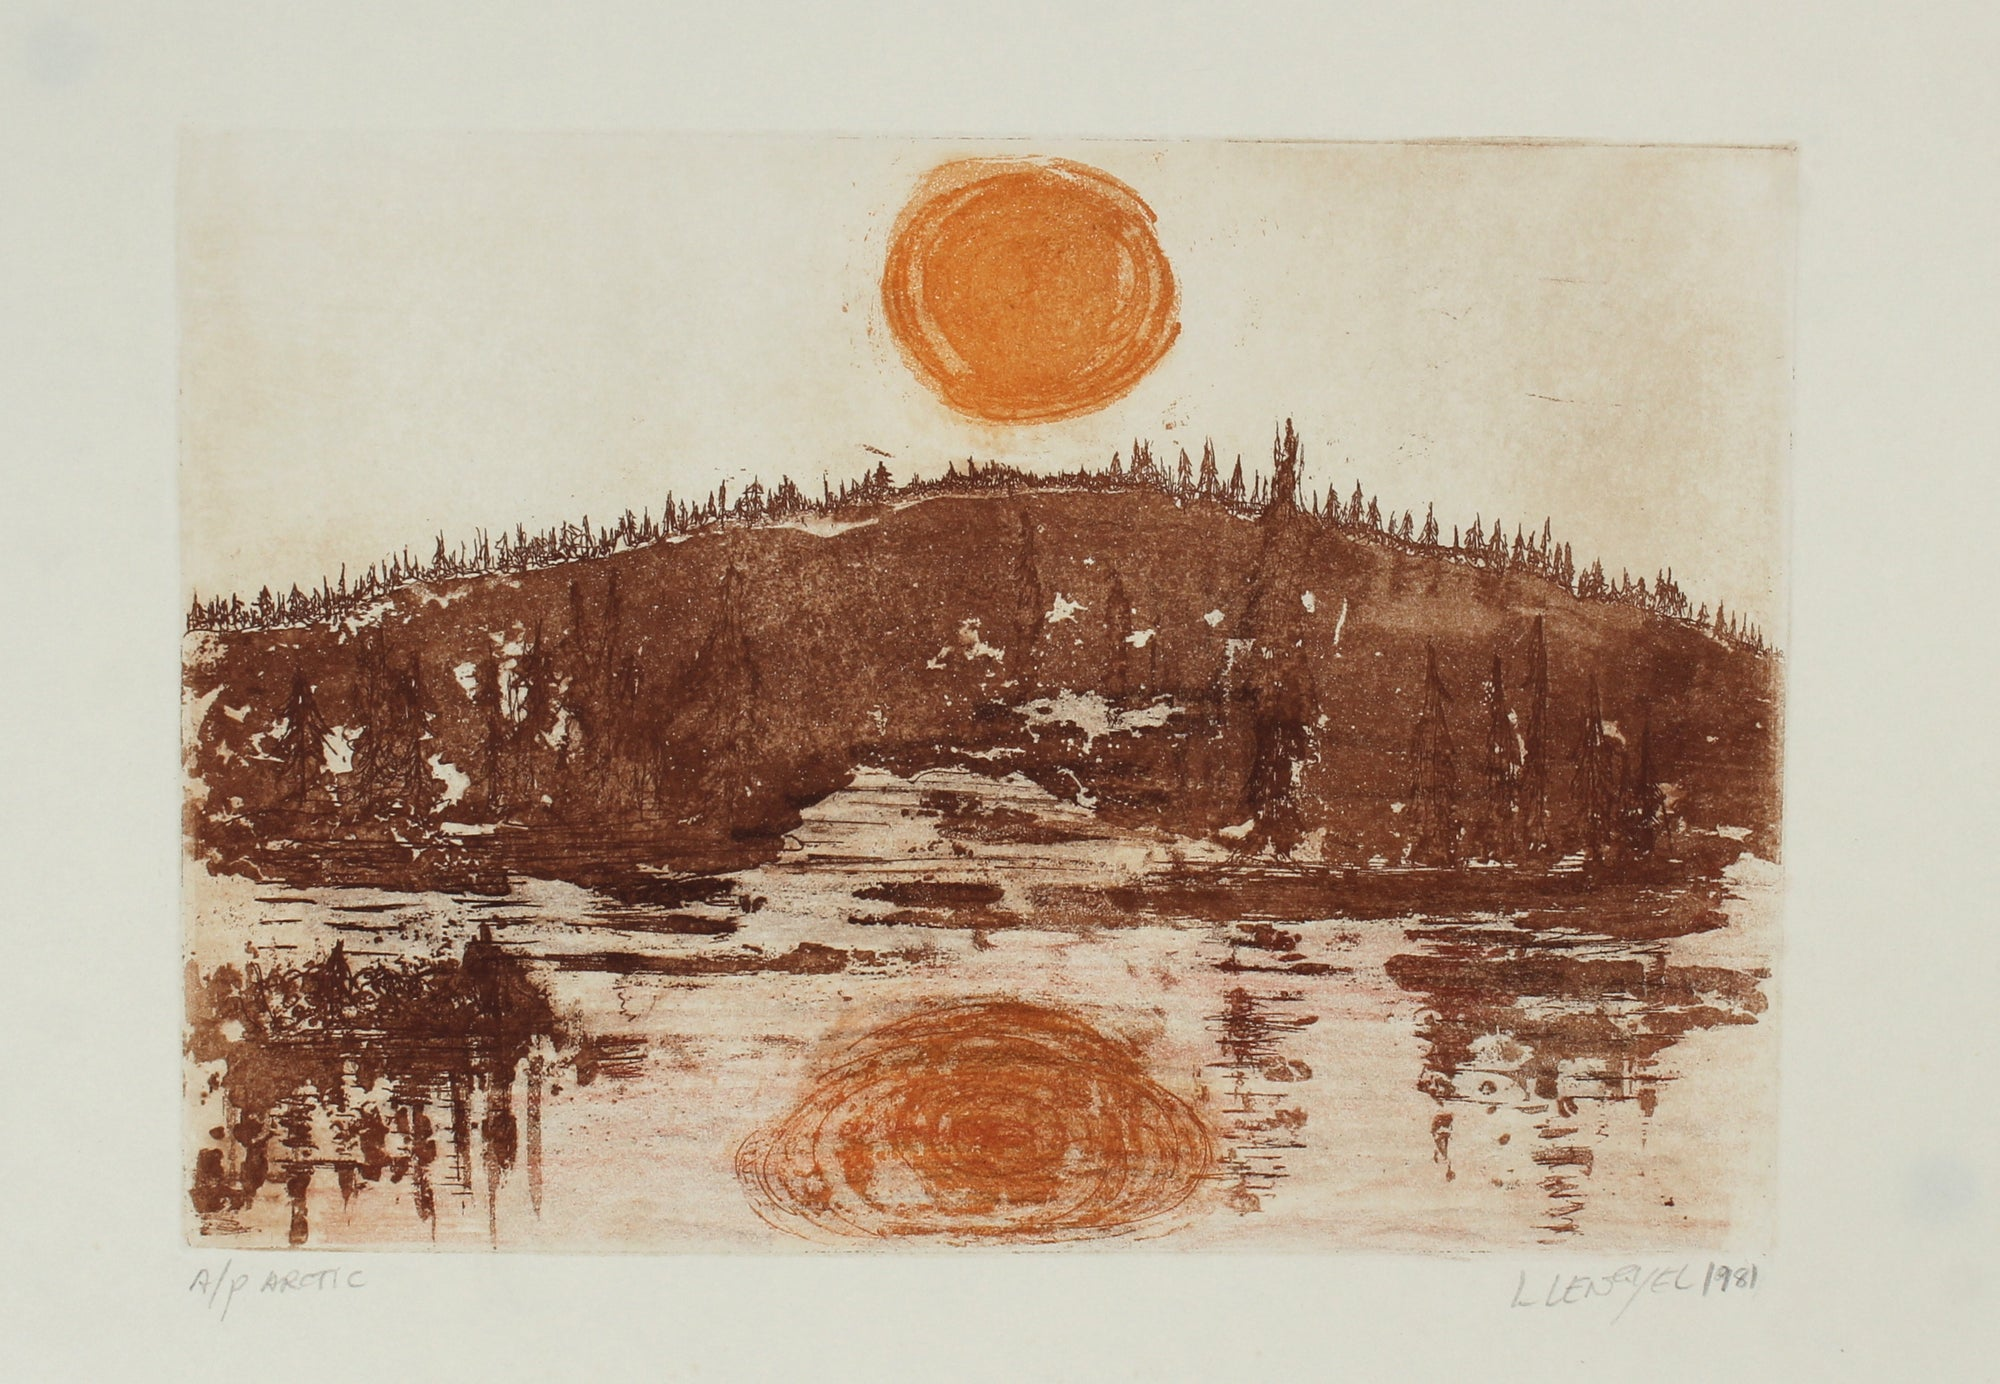 <i>Arctic</i> <br>1981 Etching <br><br>#57244